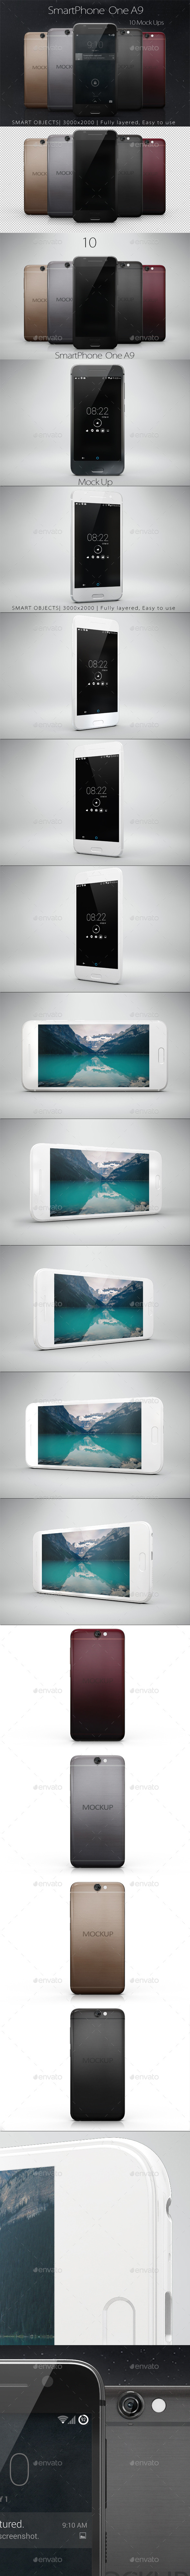 SmartPhone One A9 Mock Up - Product Mock-Ups Graphics